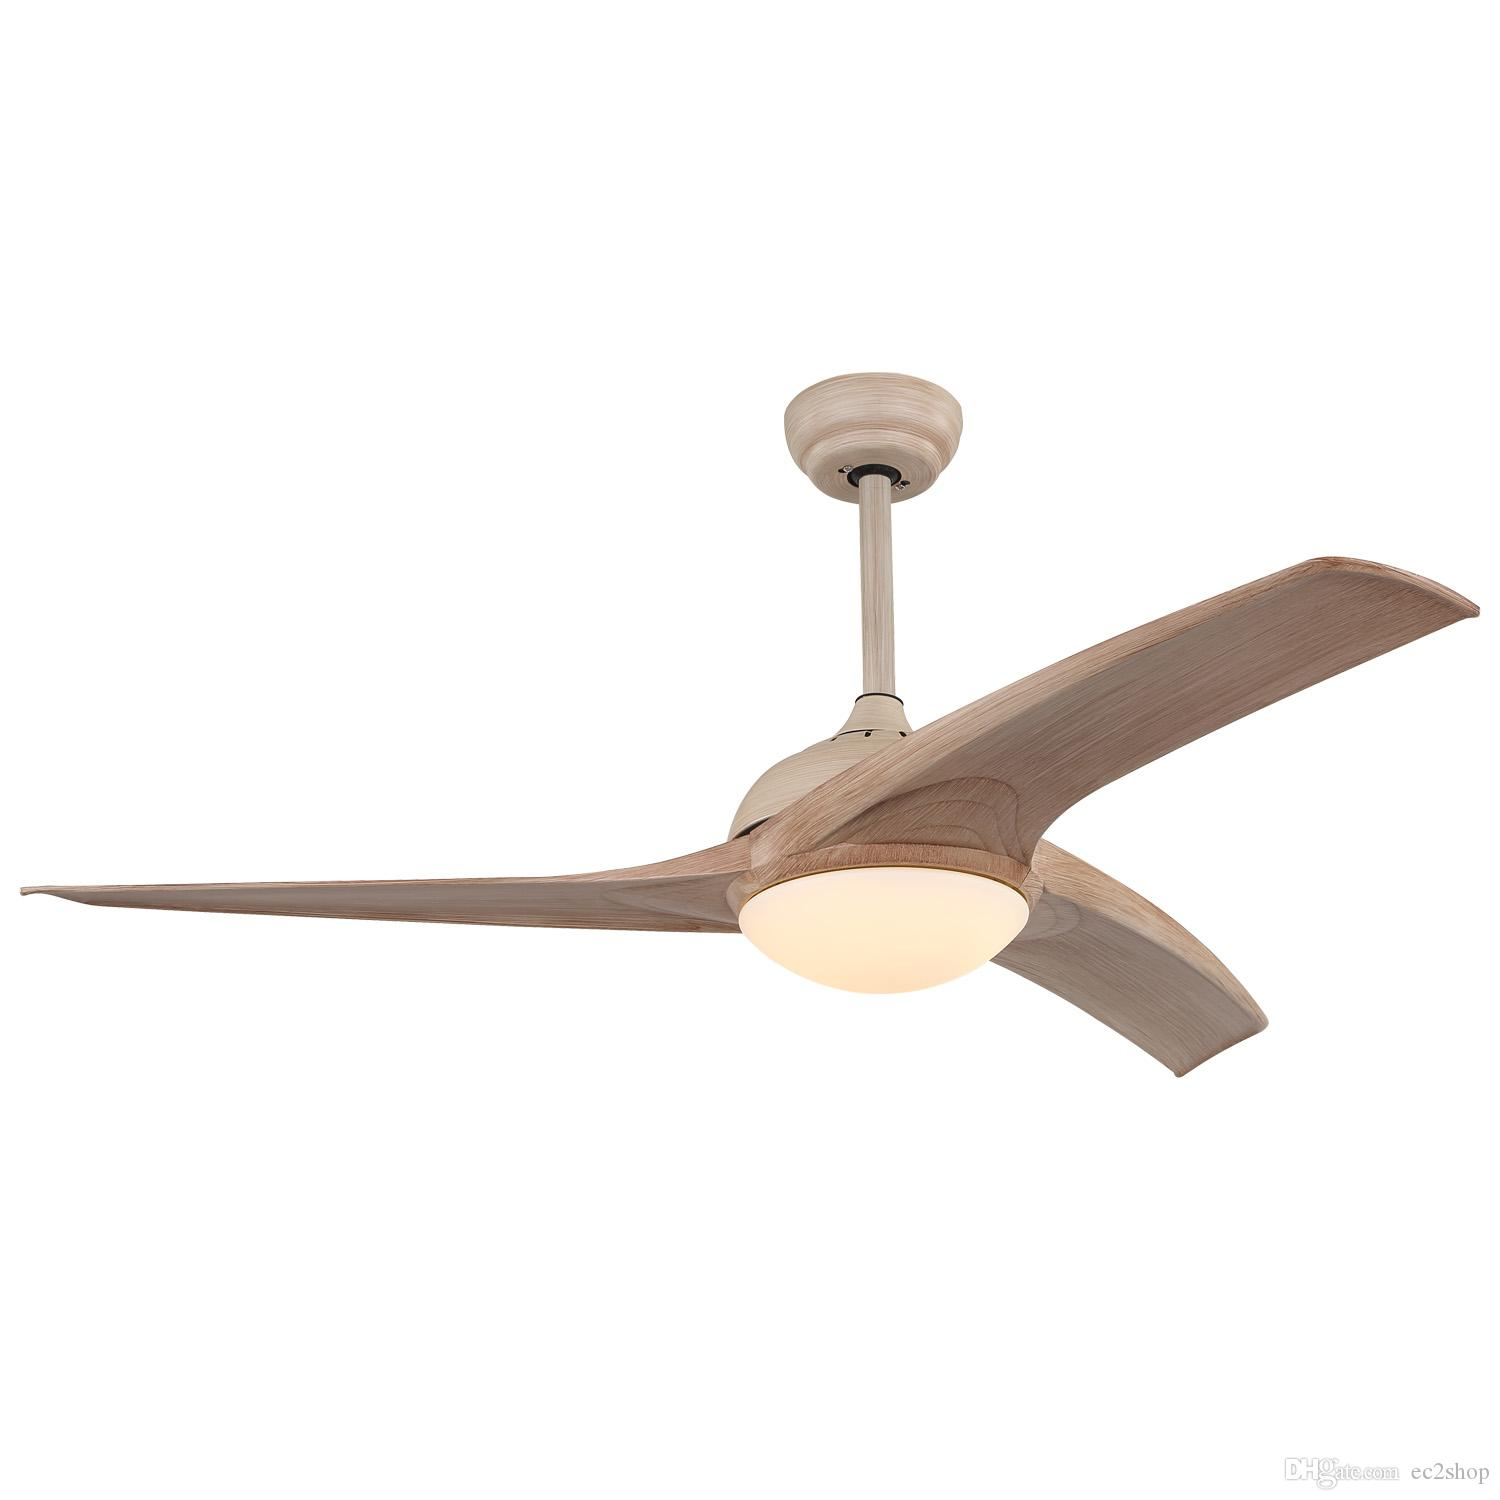 2019 Indoor Low Profile Discount Ceiling Fans With Lights And Remote